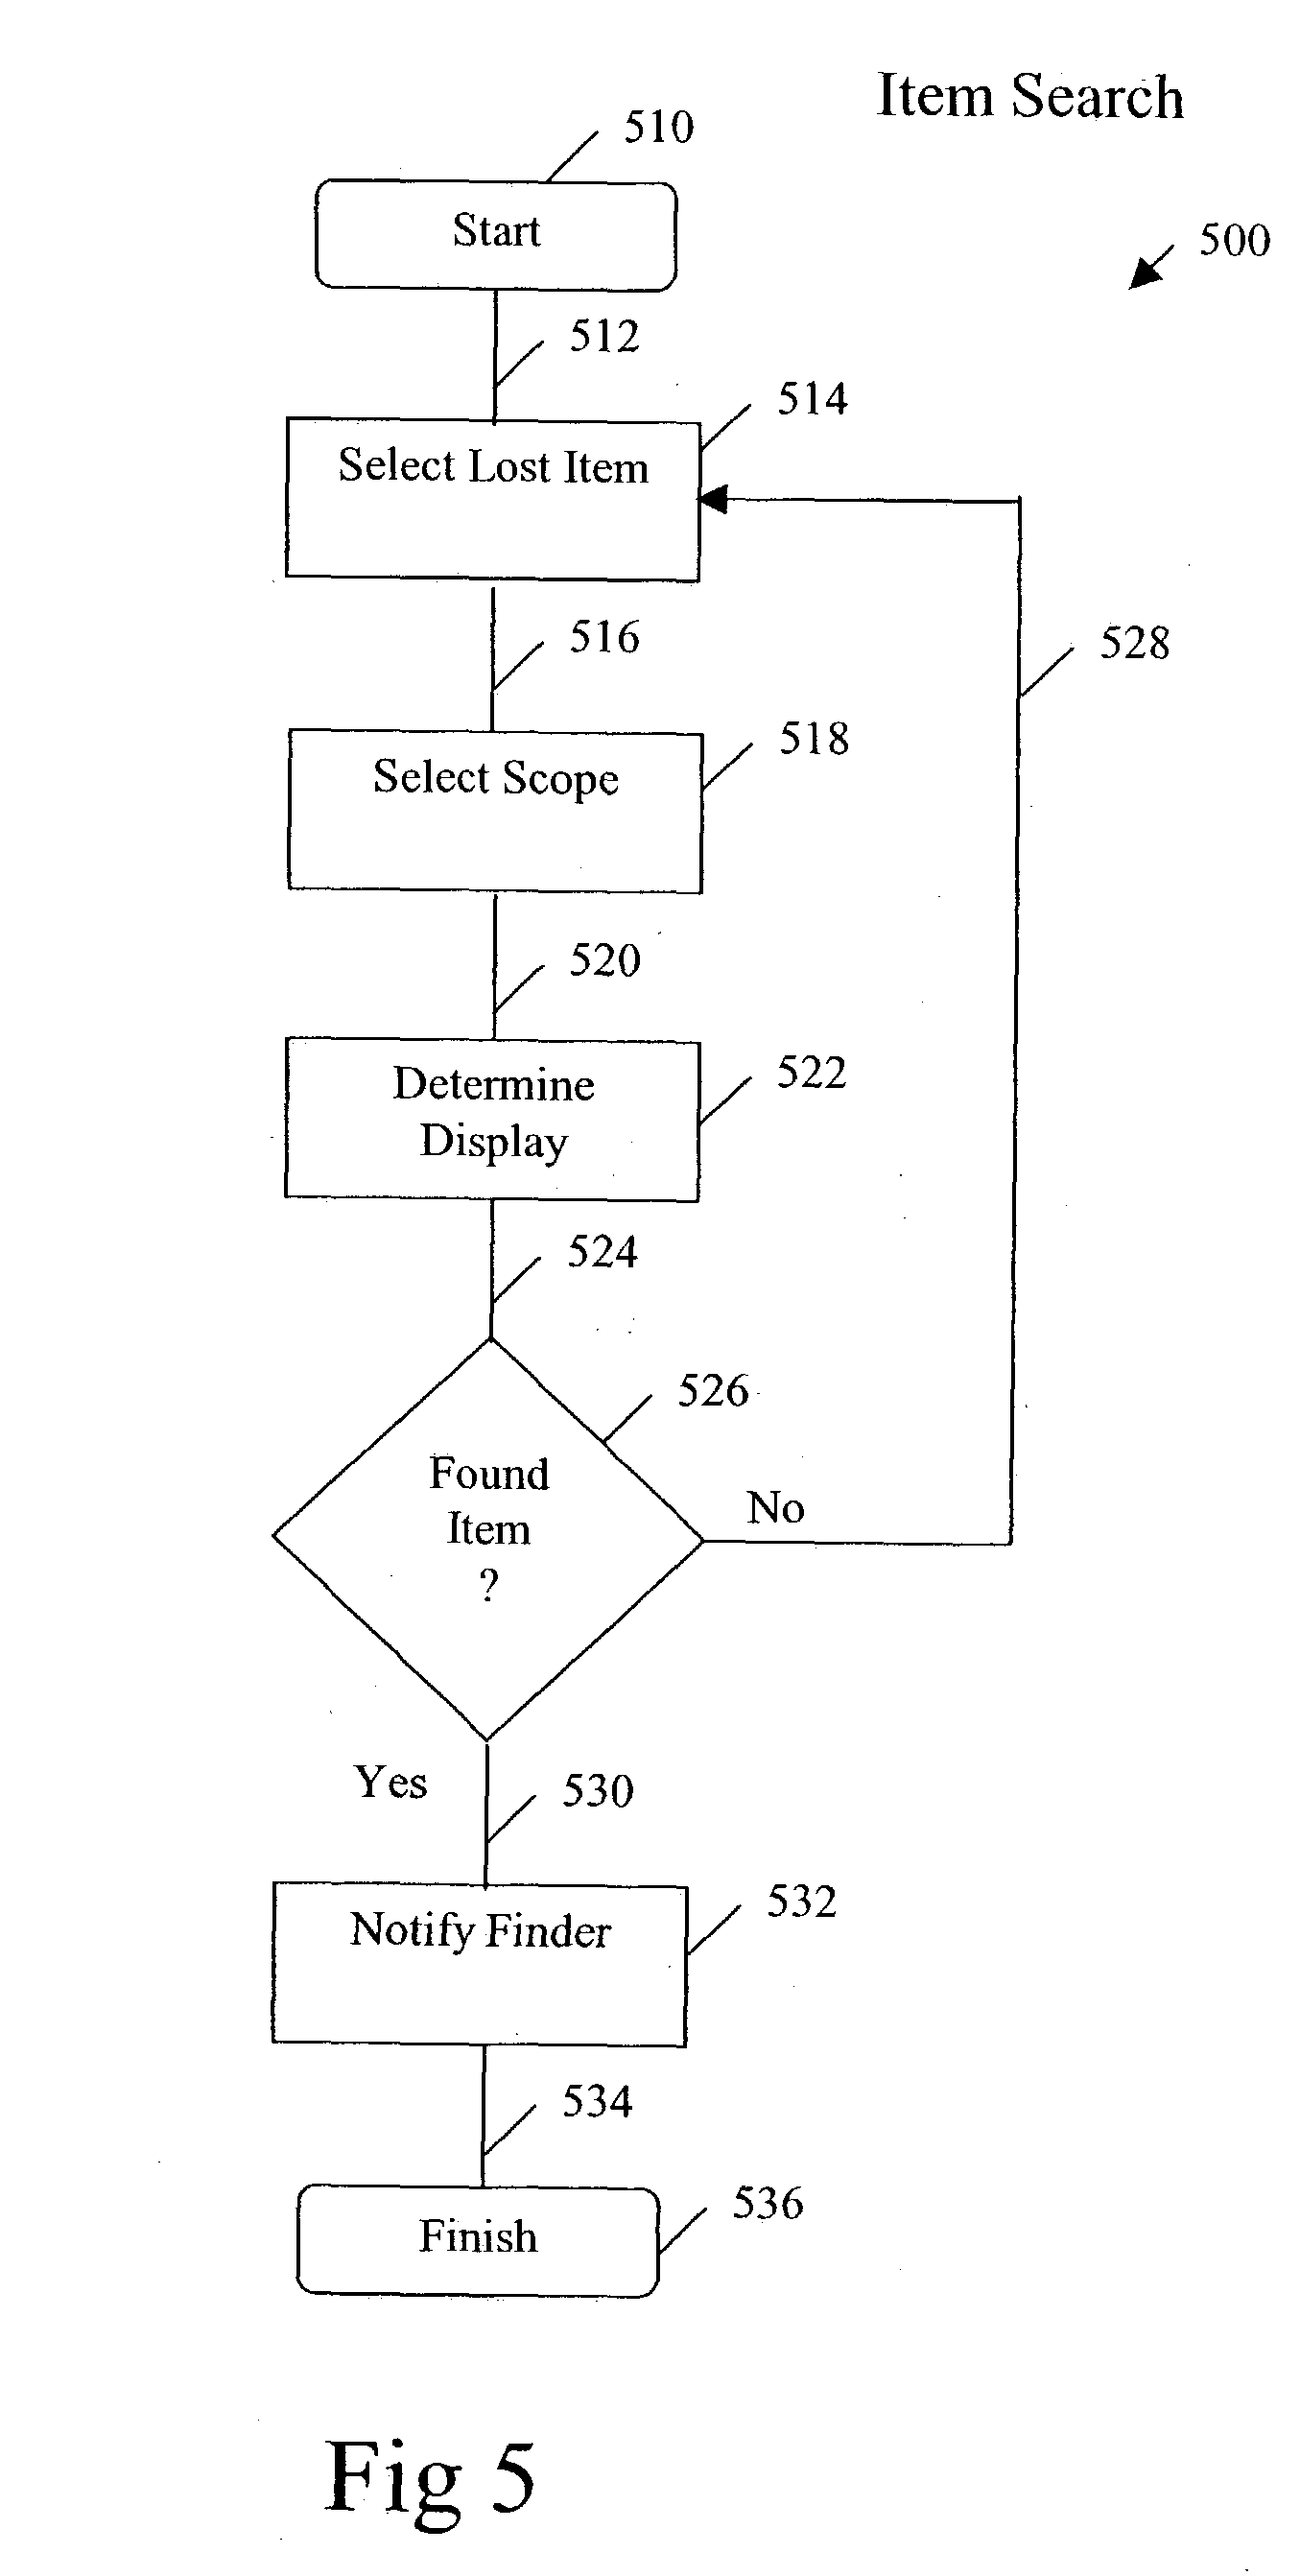 Constructive Receipt Of Income Pdf Patent Us  System And Method For Asset Tracking With  Invoice Template On Excel Excel with Sales Invoice Template Pdf Patent Drawing Red Cross Tax Receipt Excel